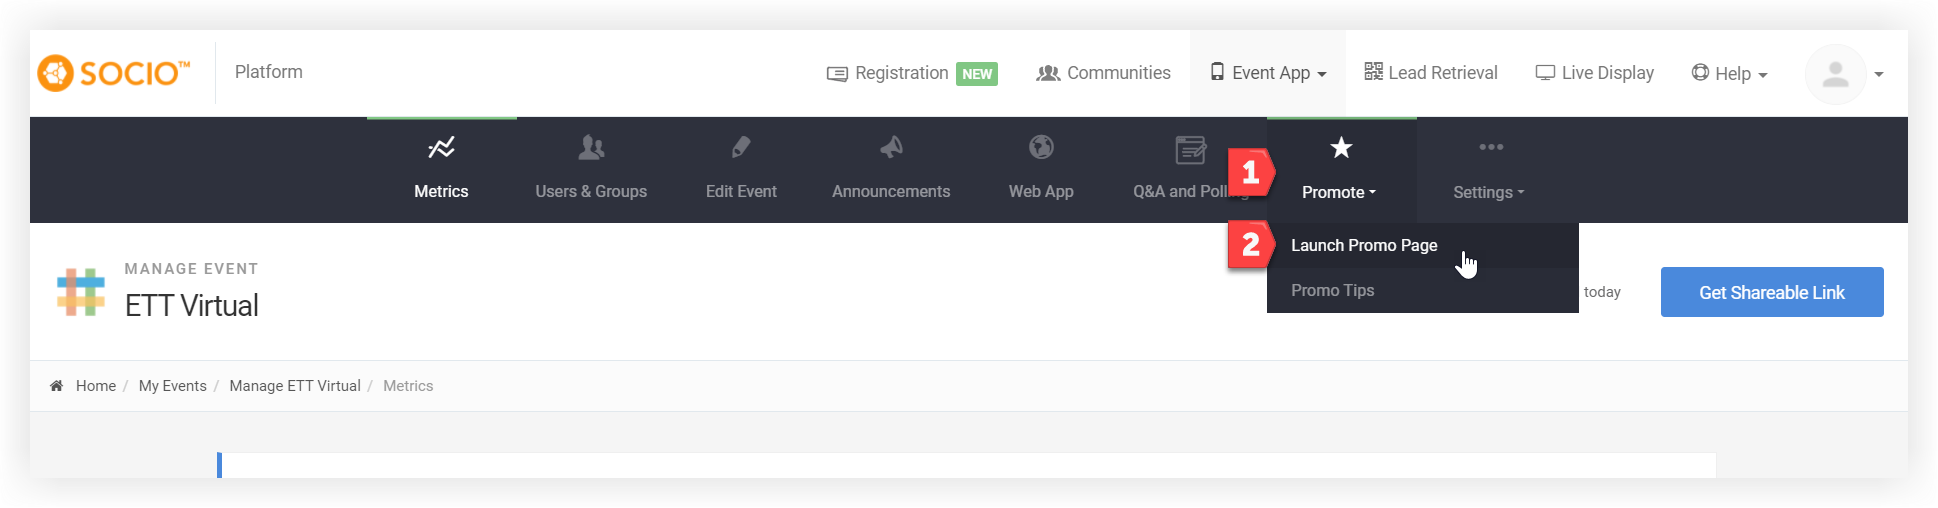 Screenshot of the Promote dropdown. The Launch Promo Page option is indicated.